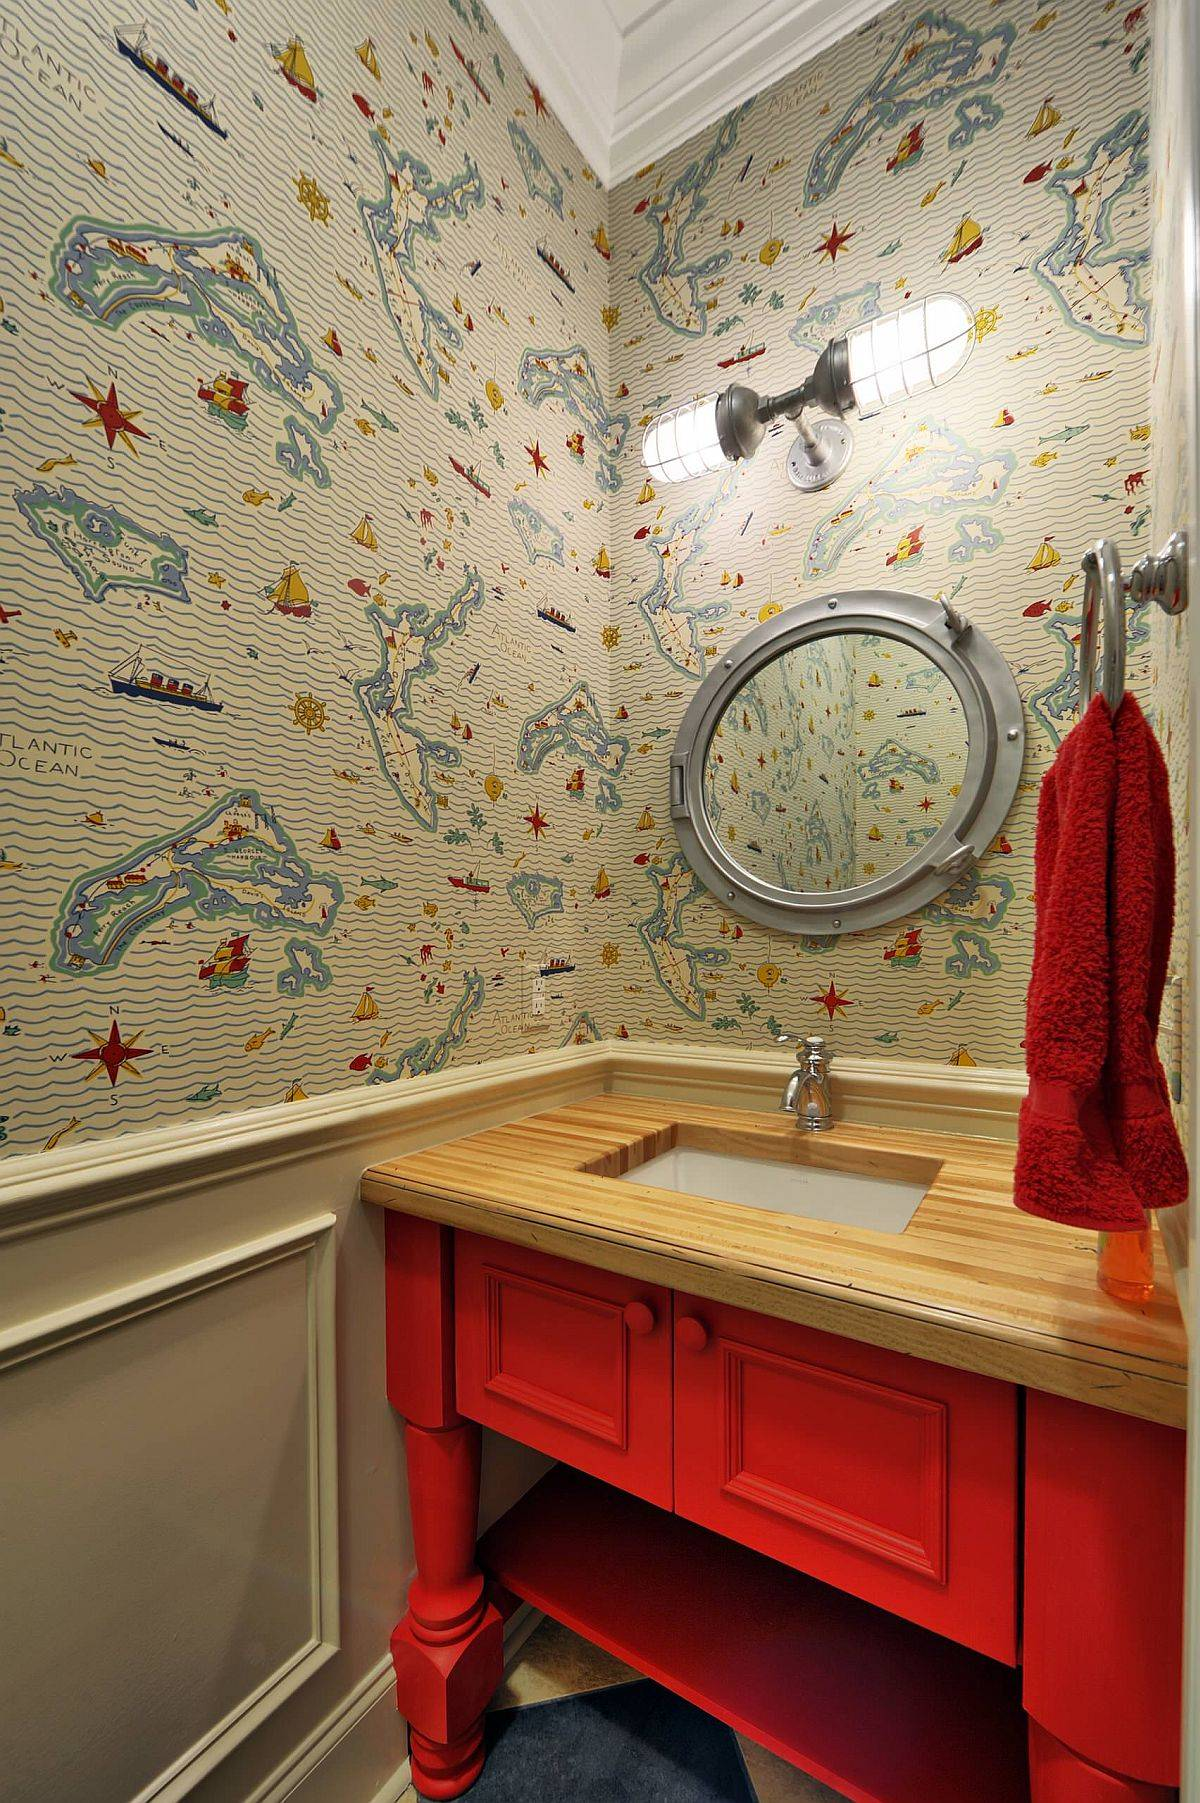 Wallpaper-brings-coastal-appeal-to-this-powder-room-in-neutral-hues-51387